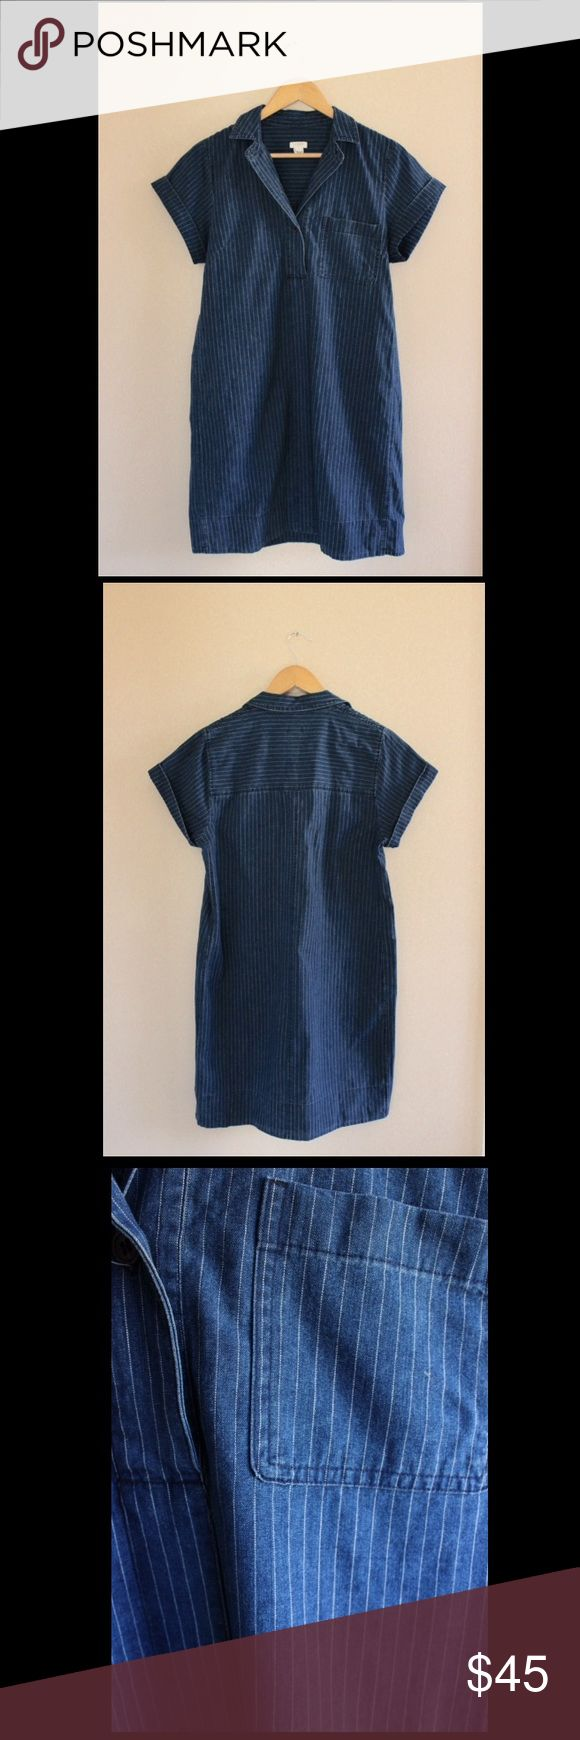 JCrew Chambray Dress Dark chambray shift dress with white pin stripes, cotton, falls above knee, button closure, chest pocket. Great throw on dress for summer! Just imagine- Panama hat and lace-up sandals! ☀️length is 35 inches J. Crew Factory Dresses Mini